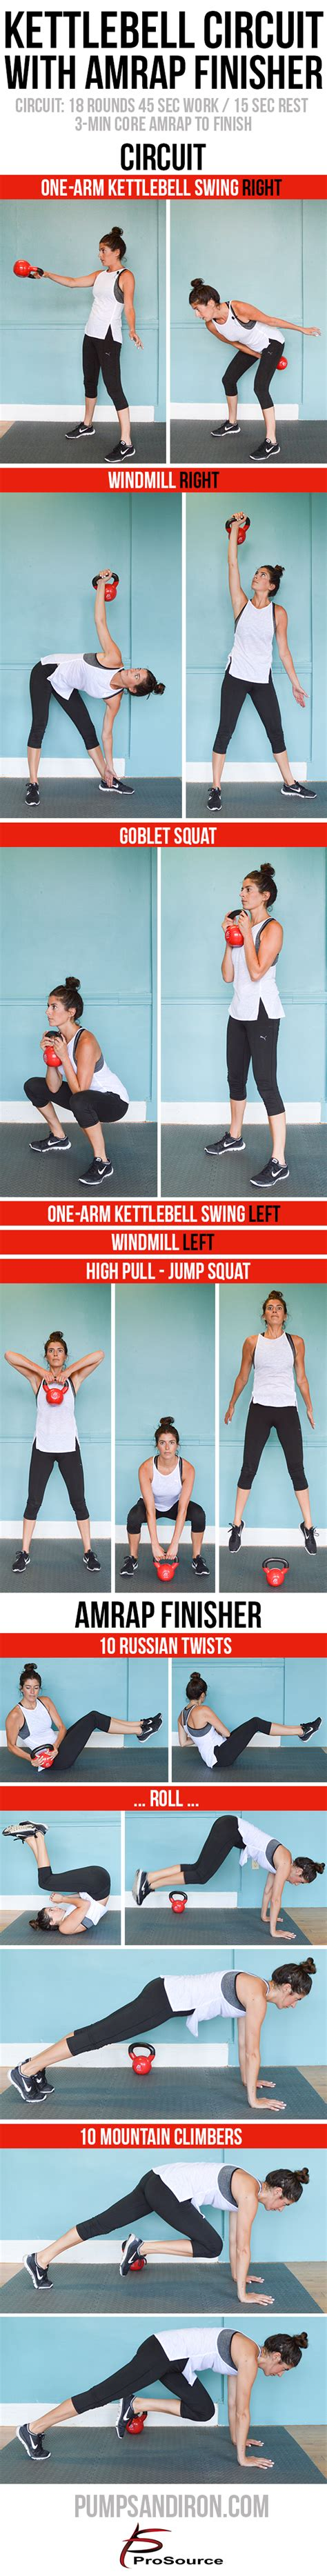 kettlebell circuit workout amrap finisher core minute exercises